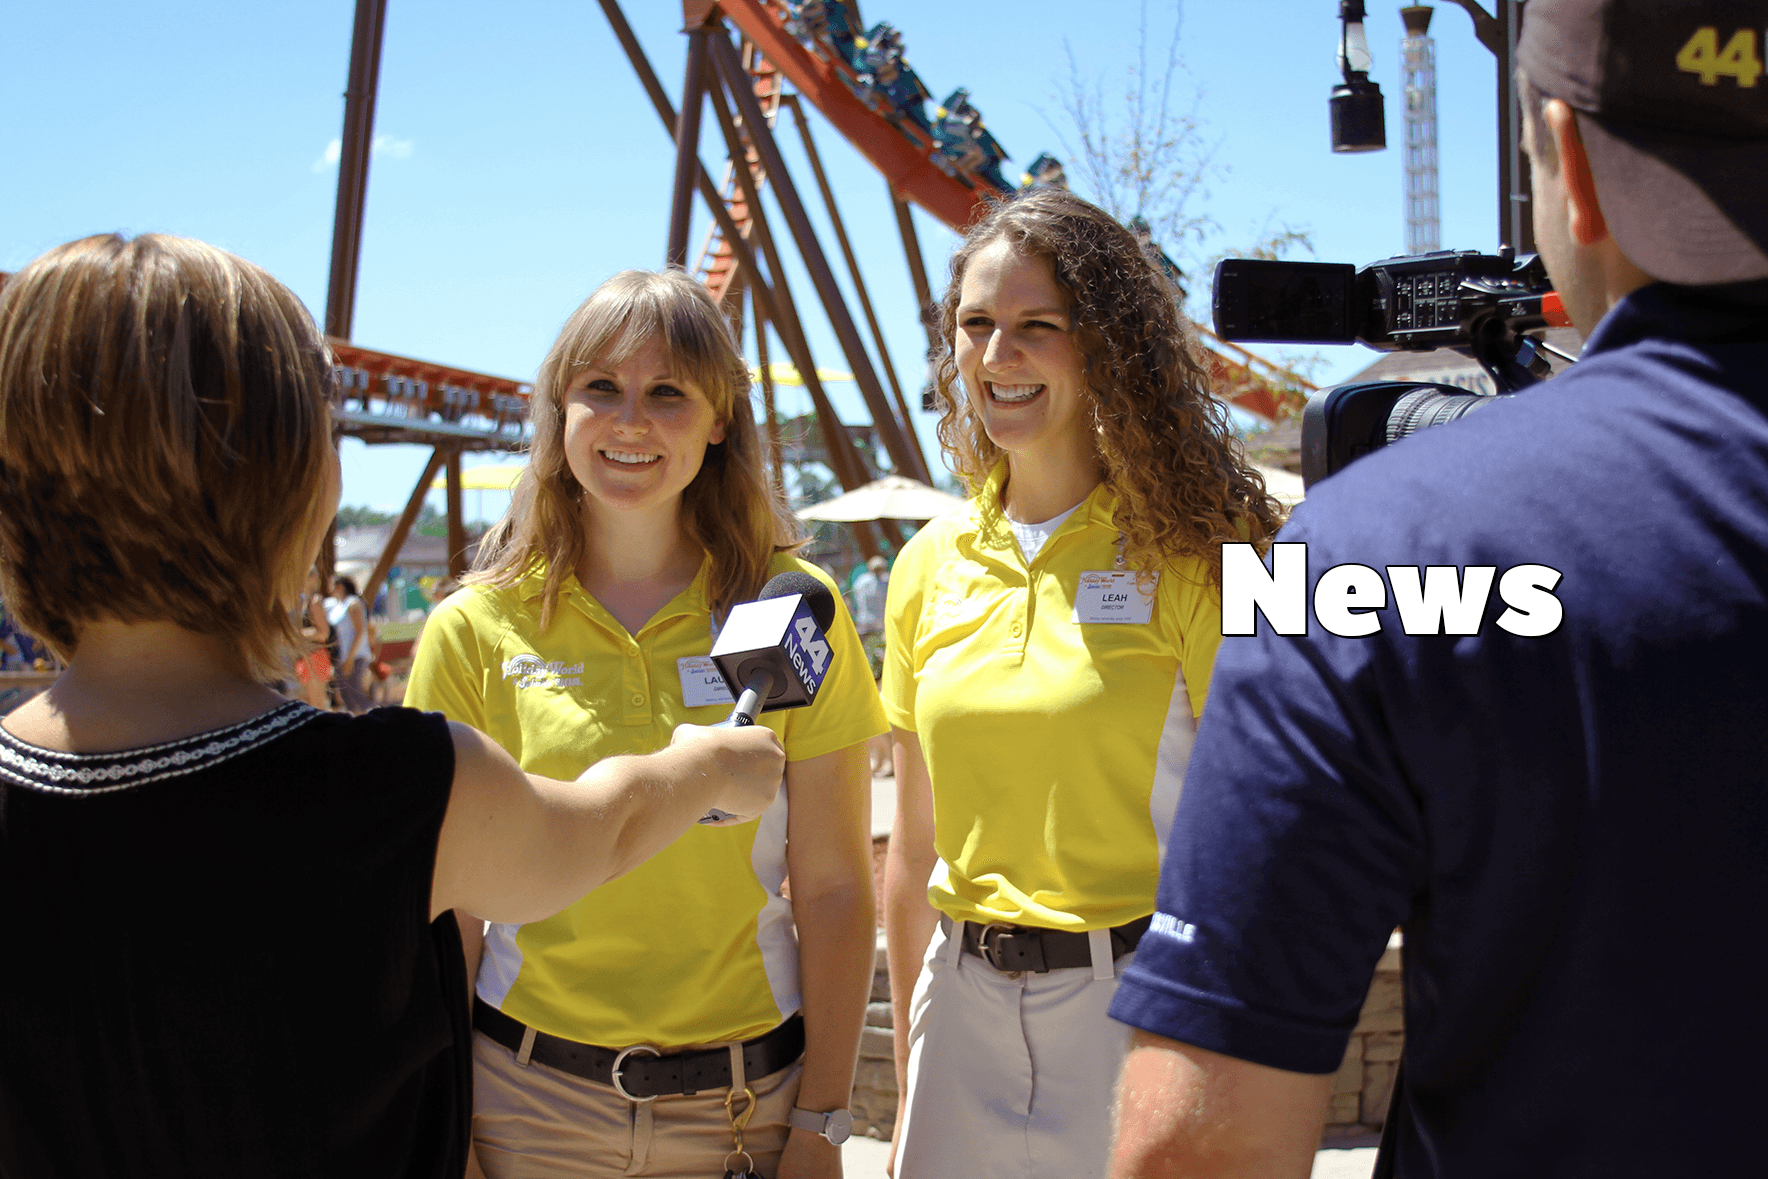 Holiday World Newsroom